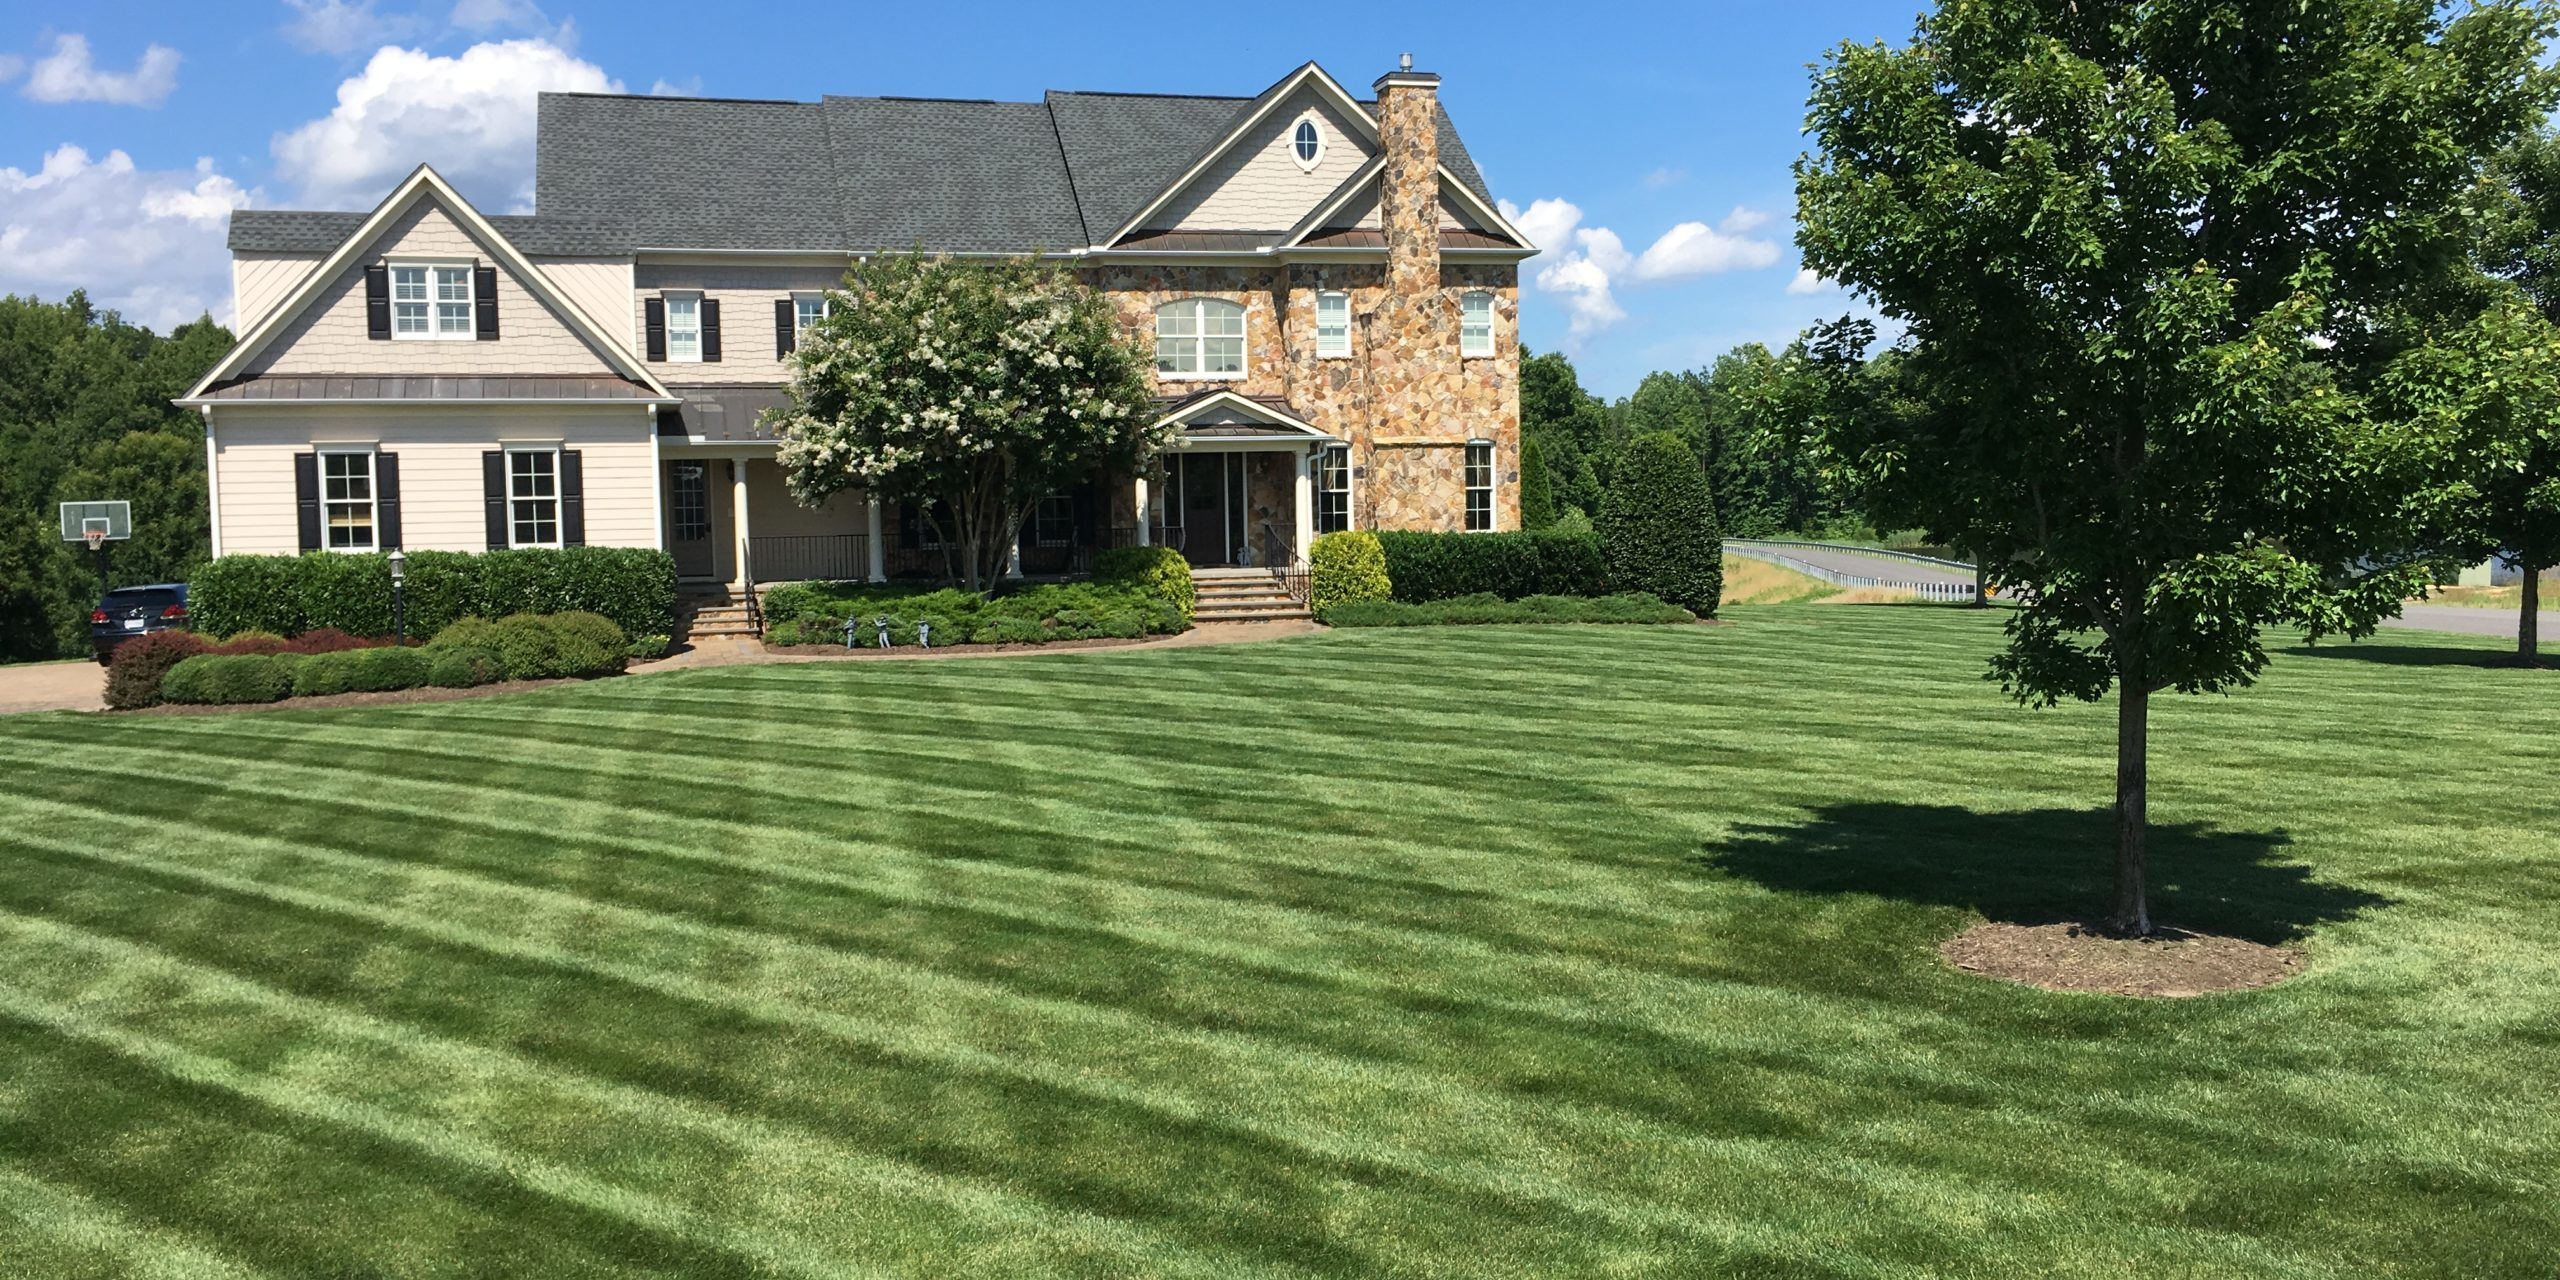 Glen Allen, Virginia Lawn Care Services